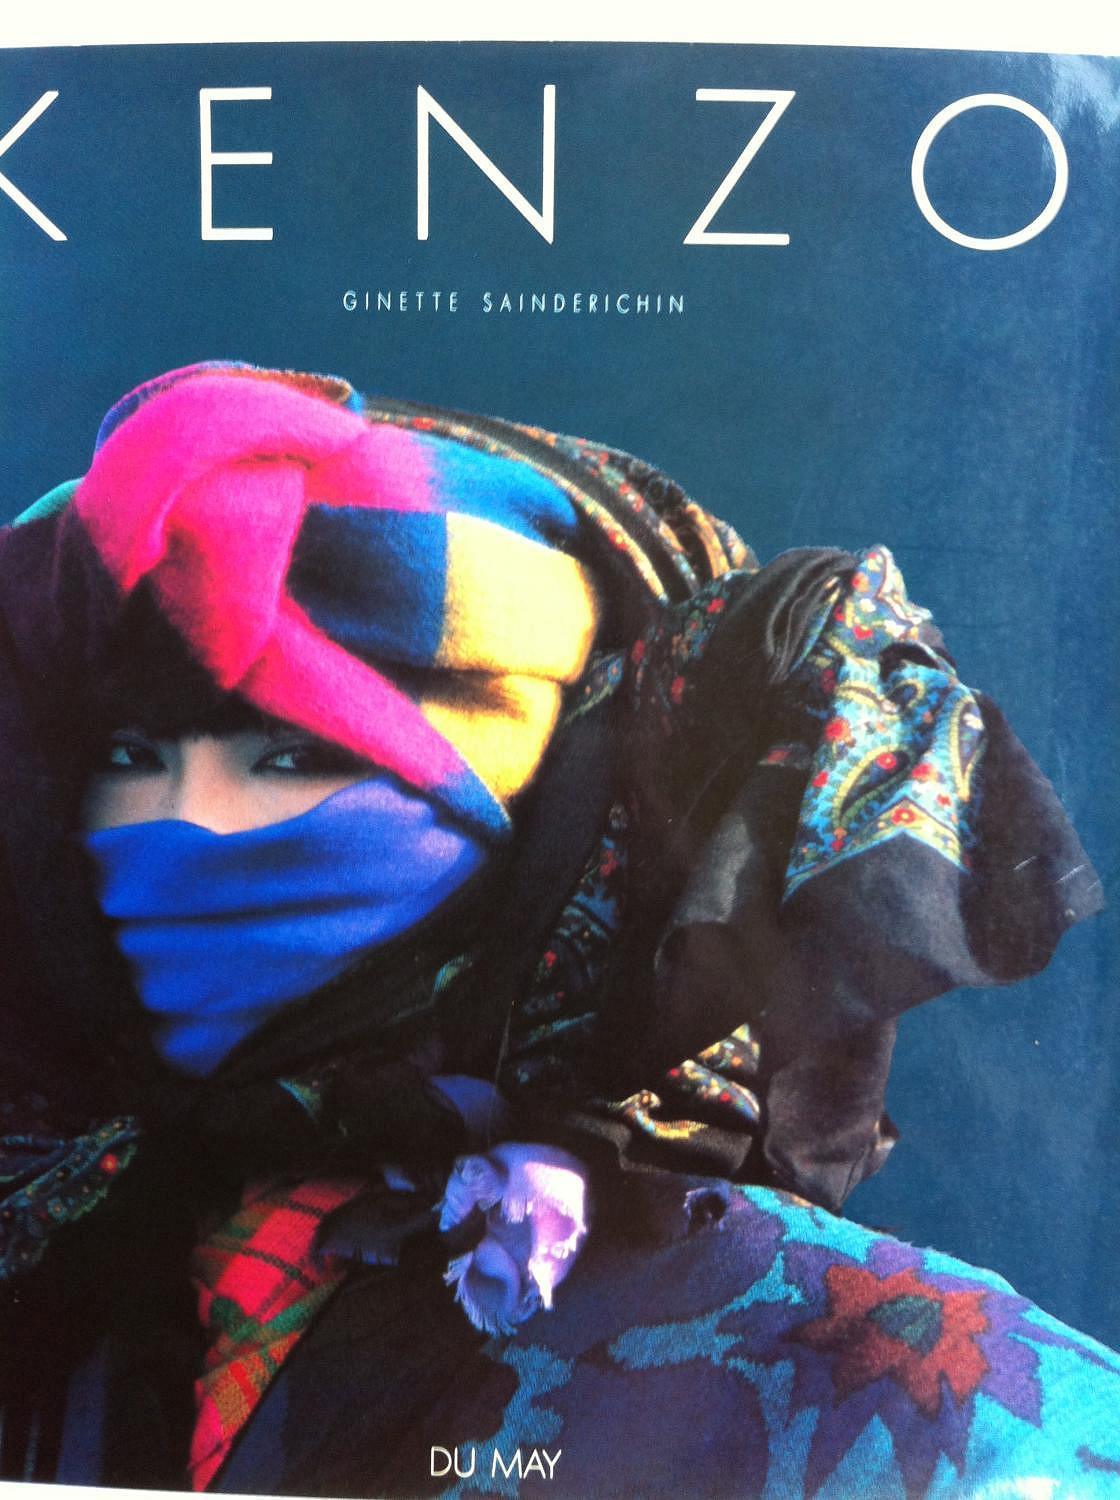 KENZO (FRENCH EDITION) SAINDERICHIN, Ginette Hardcover Hardback in dust-jacket, fine condition, with no markings or tears. Lavishly illustrated with full-color gloss photographs of gorgeous fashion moments